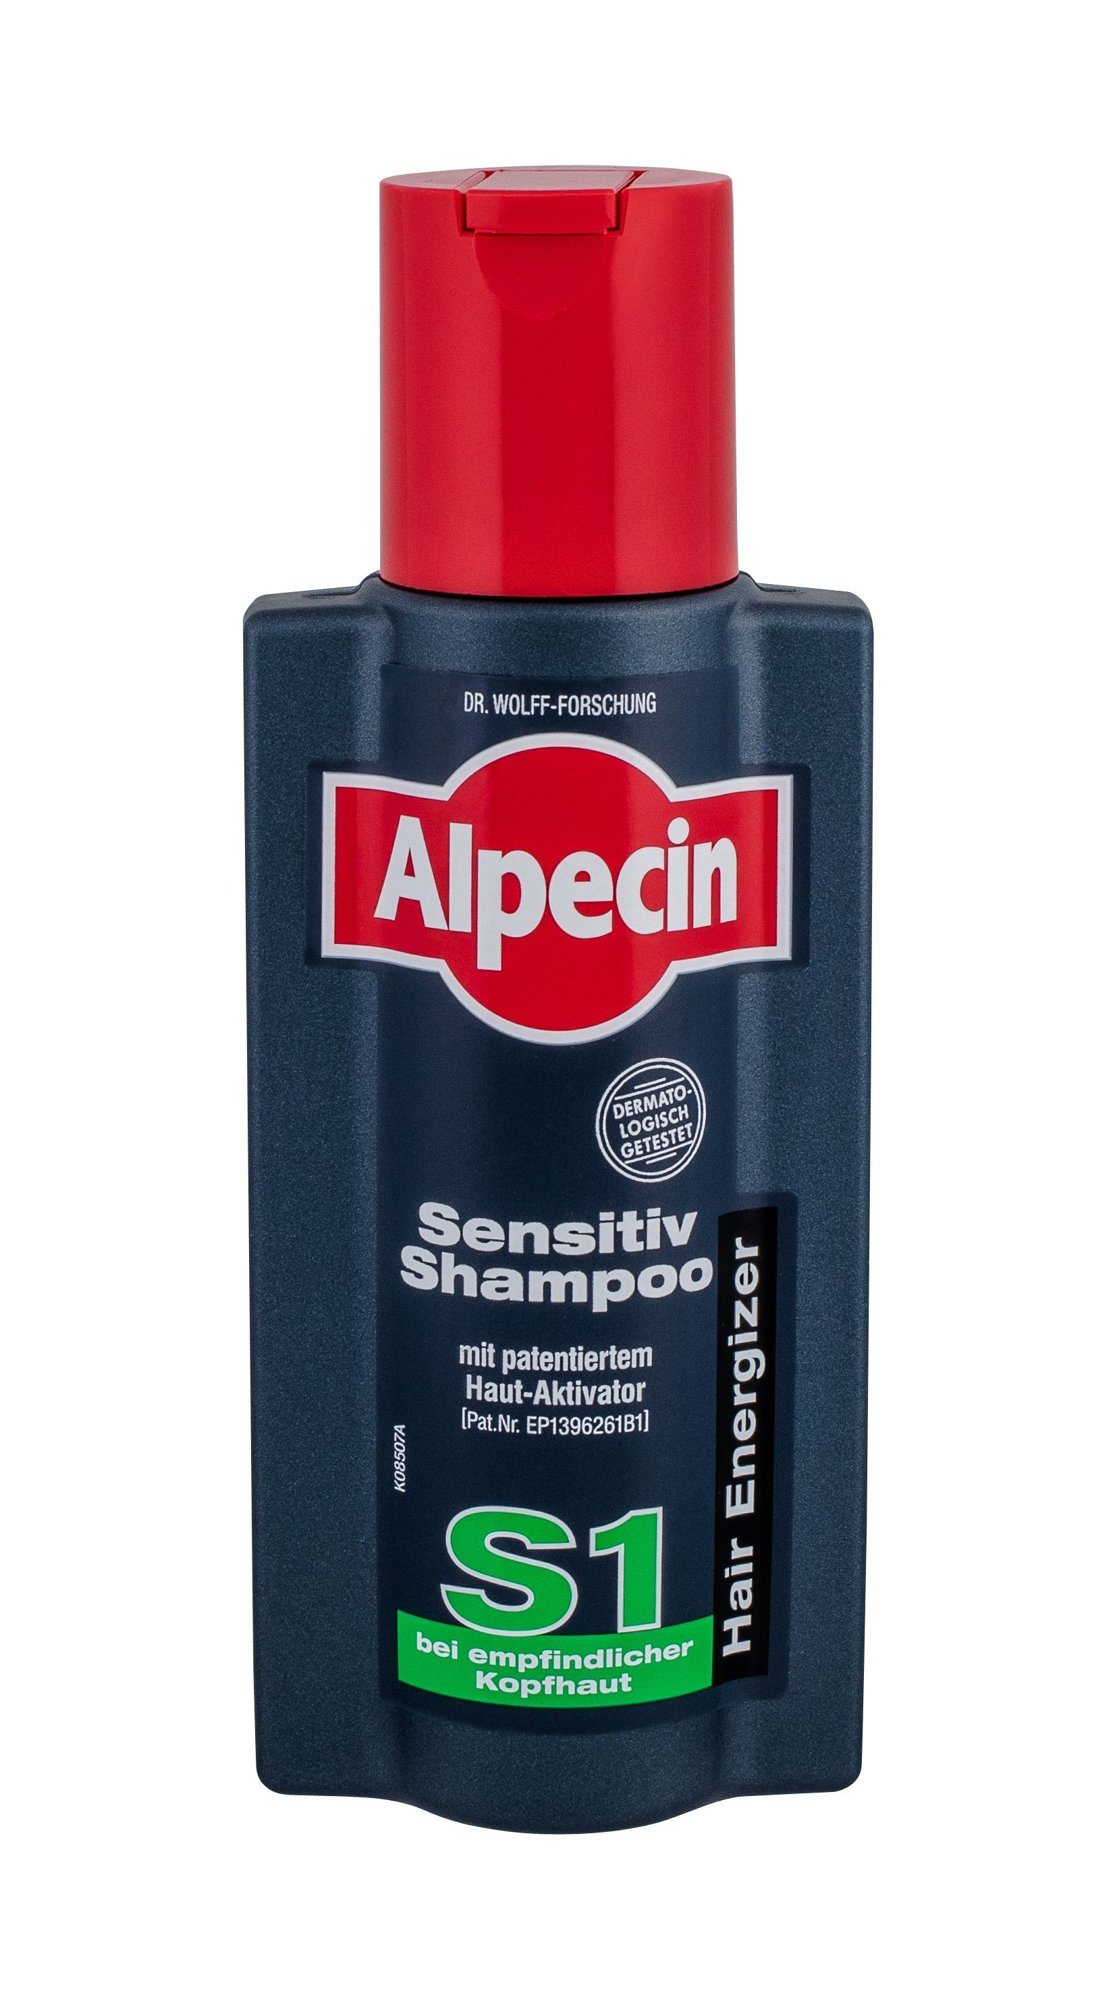 Alpecin Sensitive Shampoo S1  (Šampon, M, 250 ml)